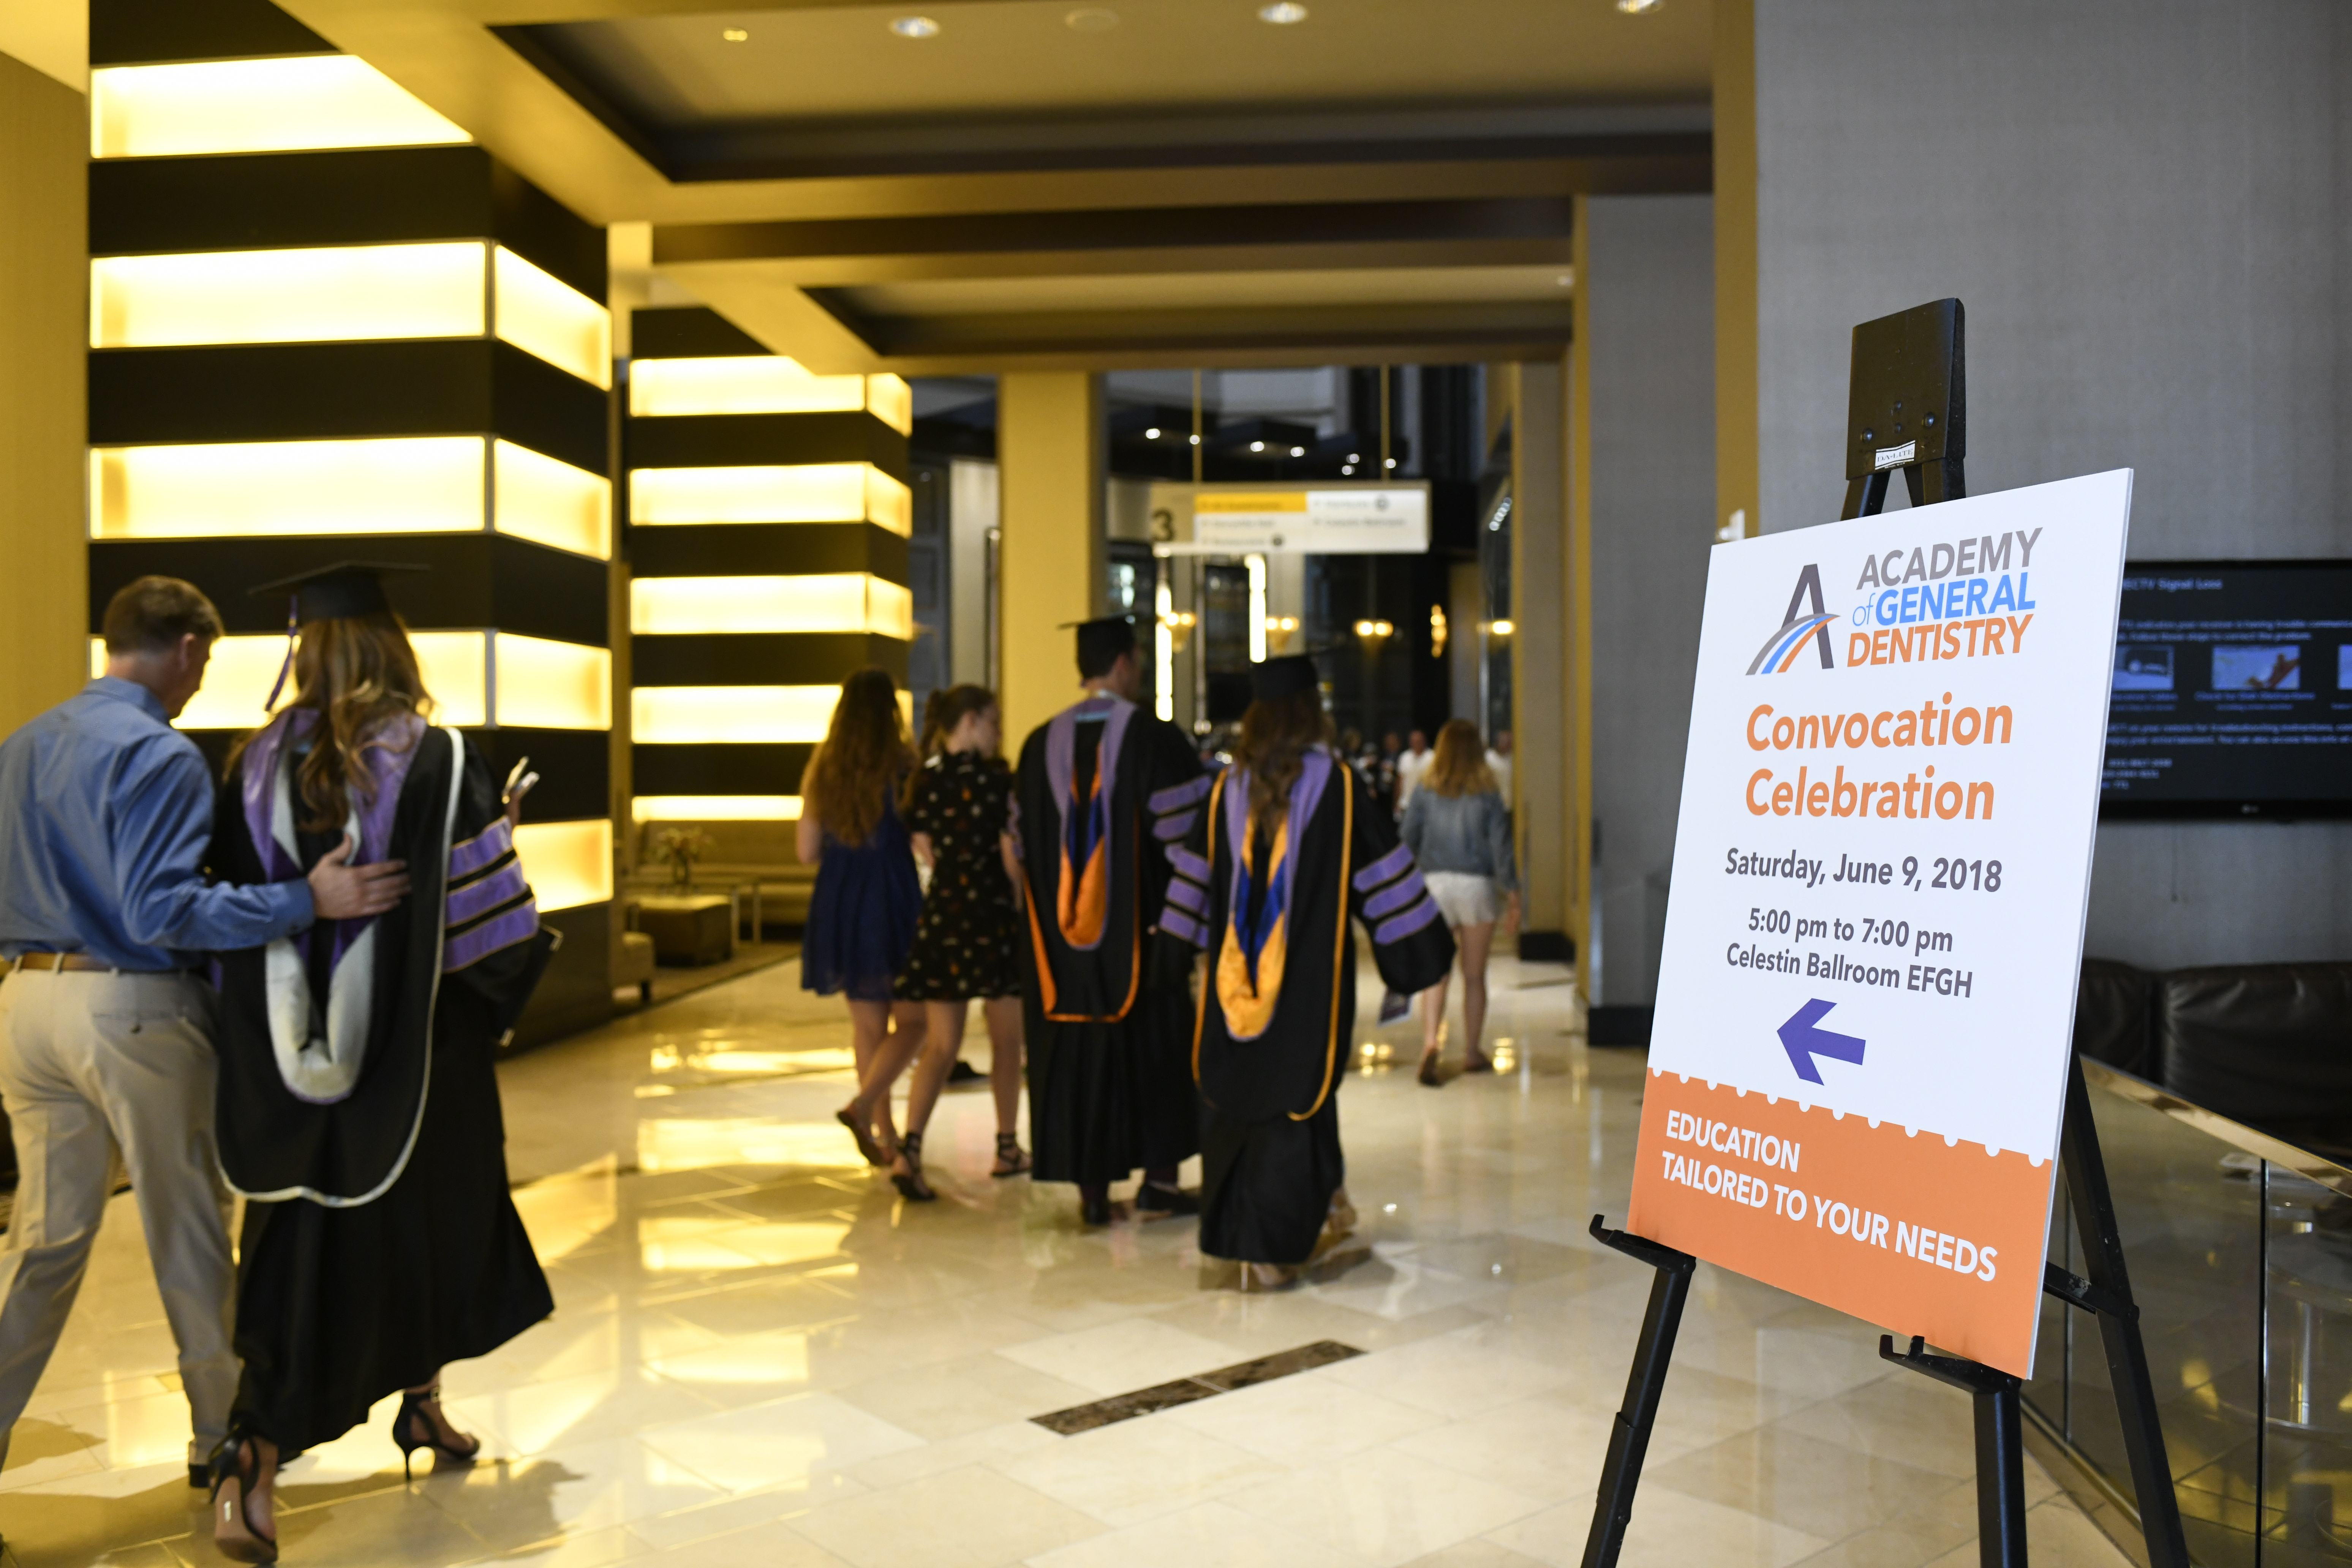 871 AGD 2018 New Orleans-Convocation Celebration